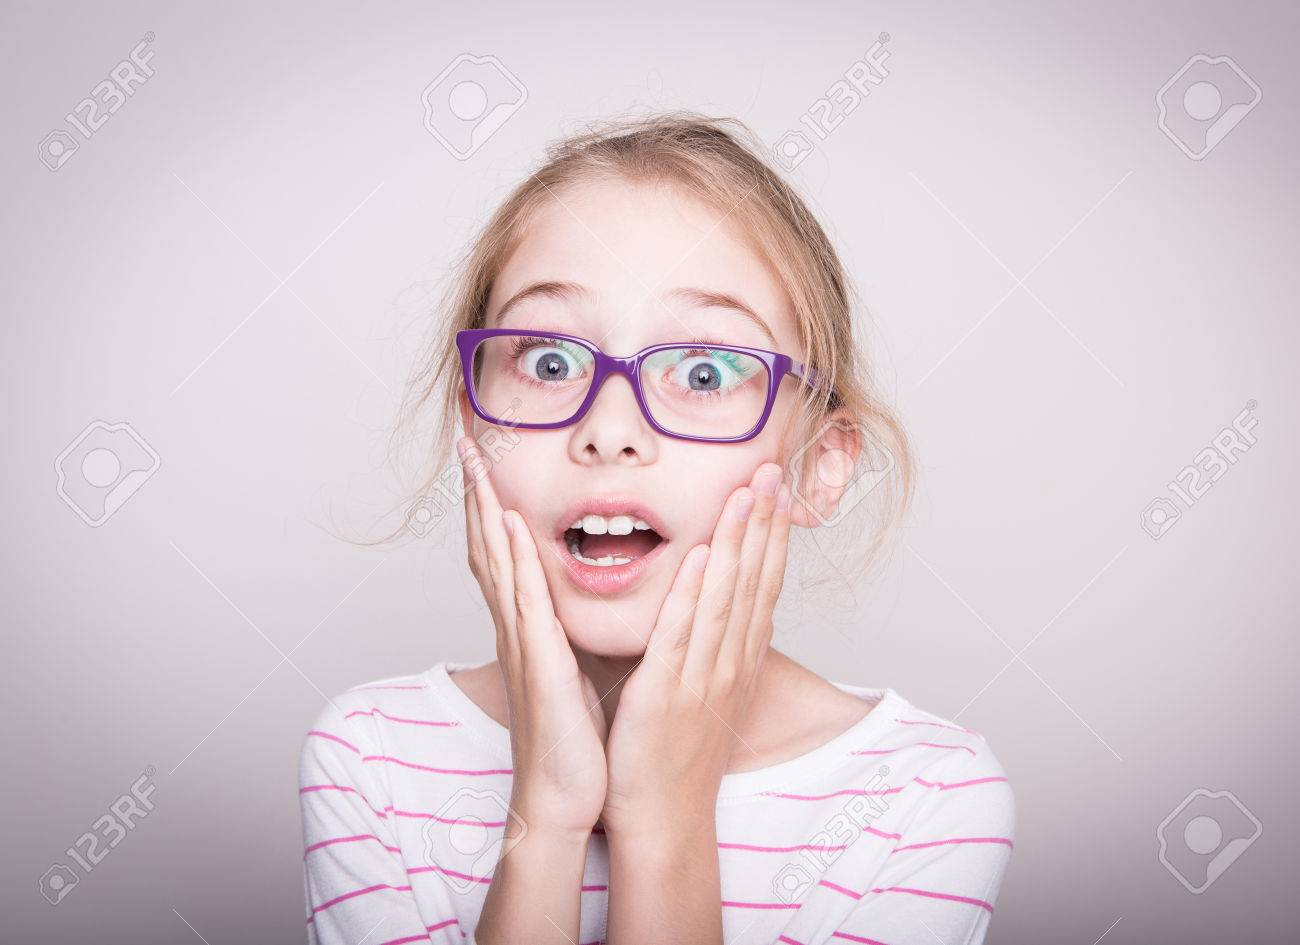 Surprised or shocked face of eight years old pretty blond caucasian child girl in violet glasses. Shock - facial expression. Layout with free copy space. - 61728559